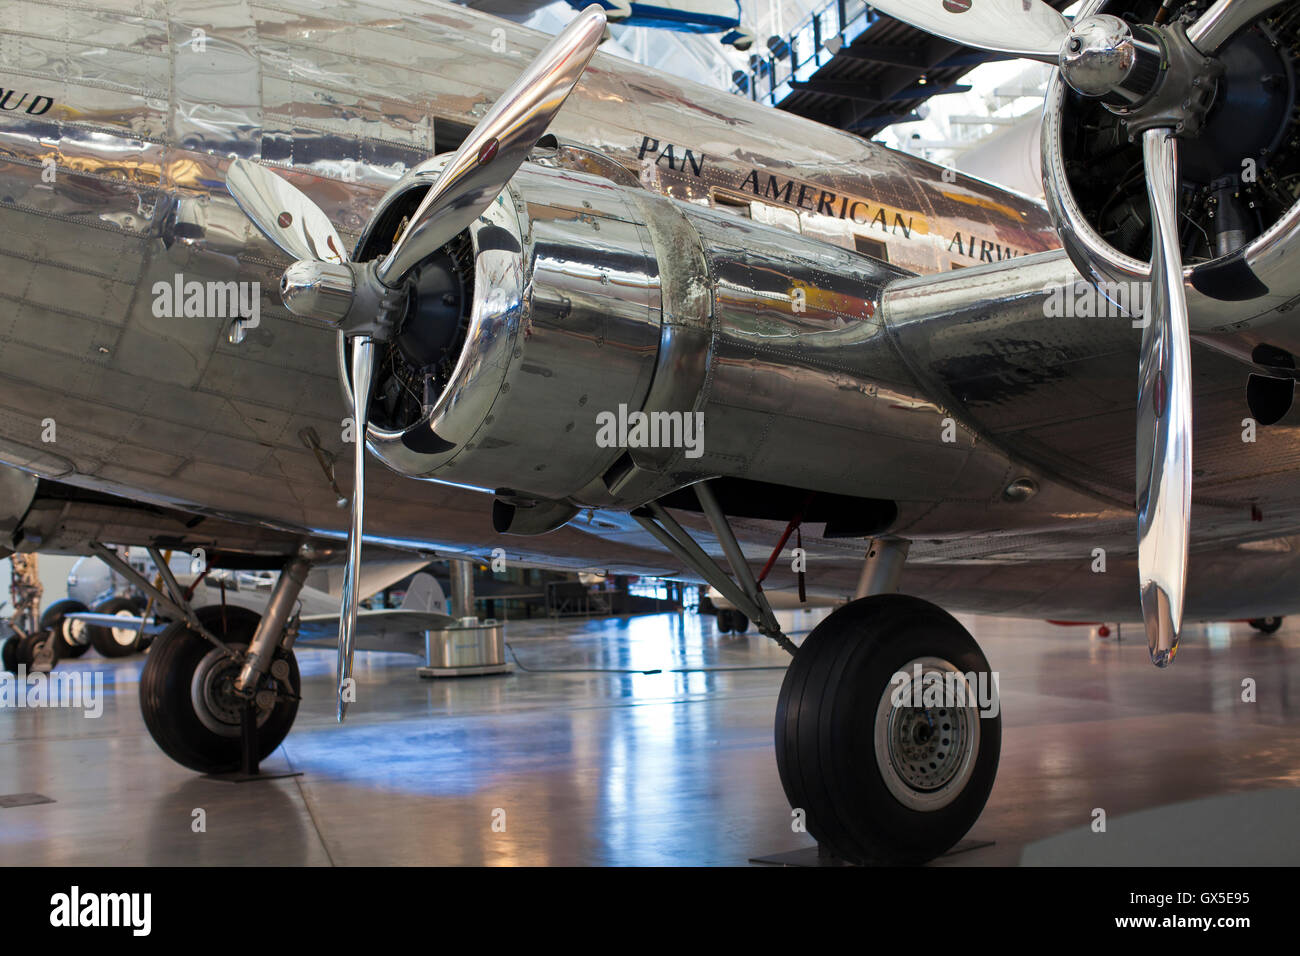 Pan Am Clipper, Pan American Airways Clipper, retro propeller aircraft - Stock Image